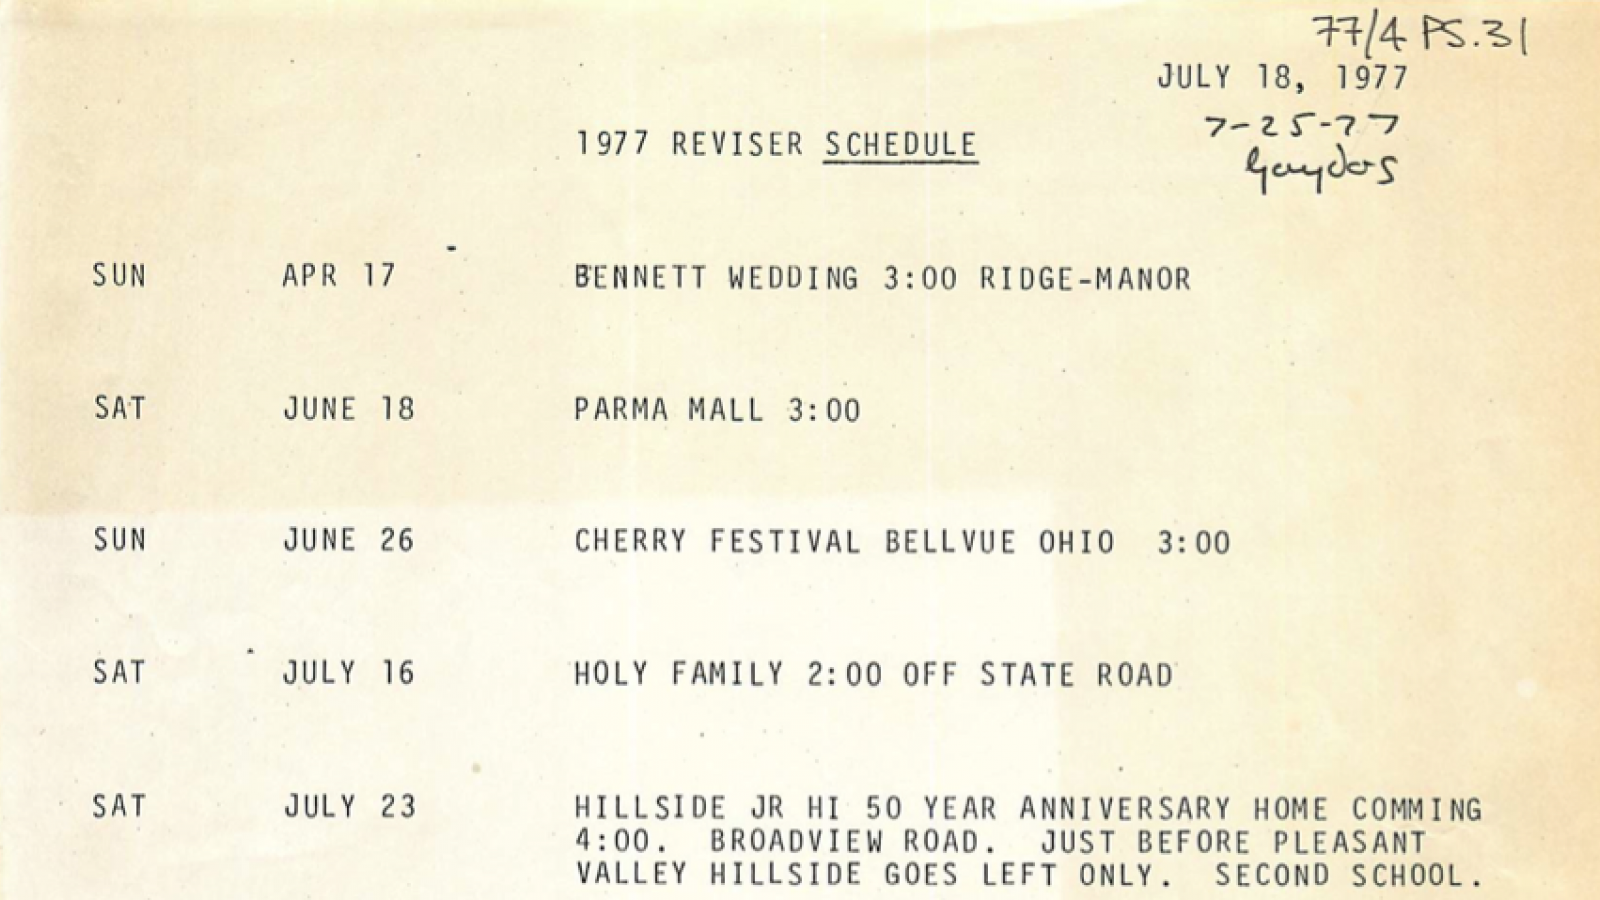 Schedule for the 1977 performances of the St. Theodosius Folk Dancers.